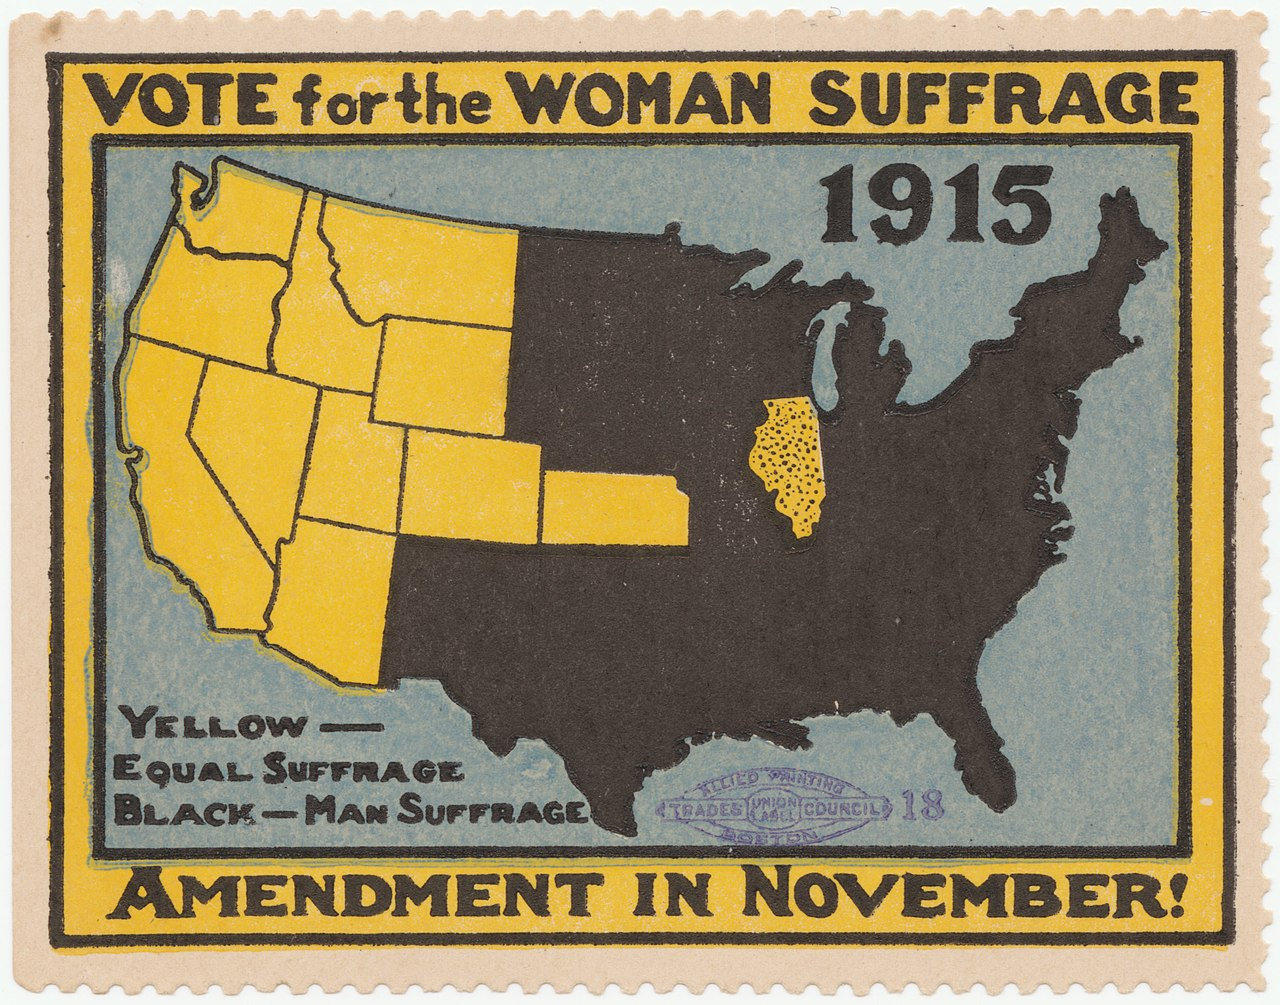 file vote for the w suffrage amendment cornell cul pjm file vote for the w suffrage amendment 1915 cornell cul pjm 1177 01 jpg